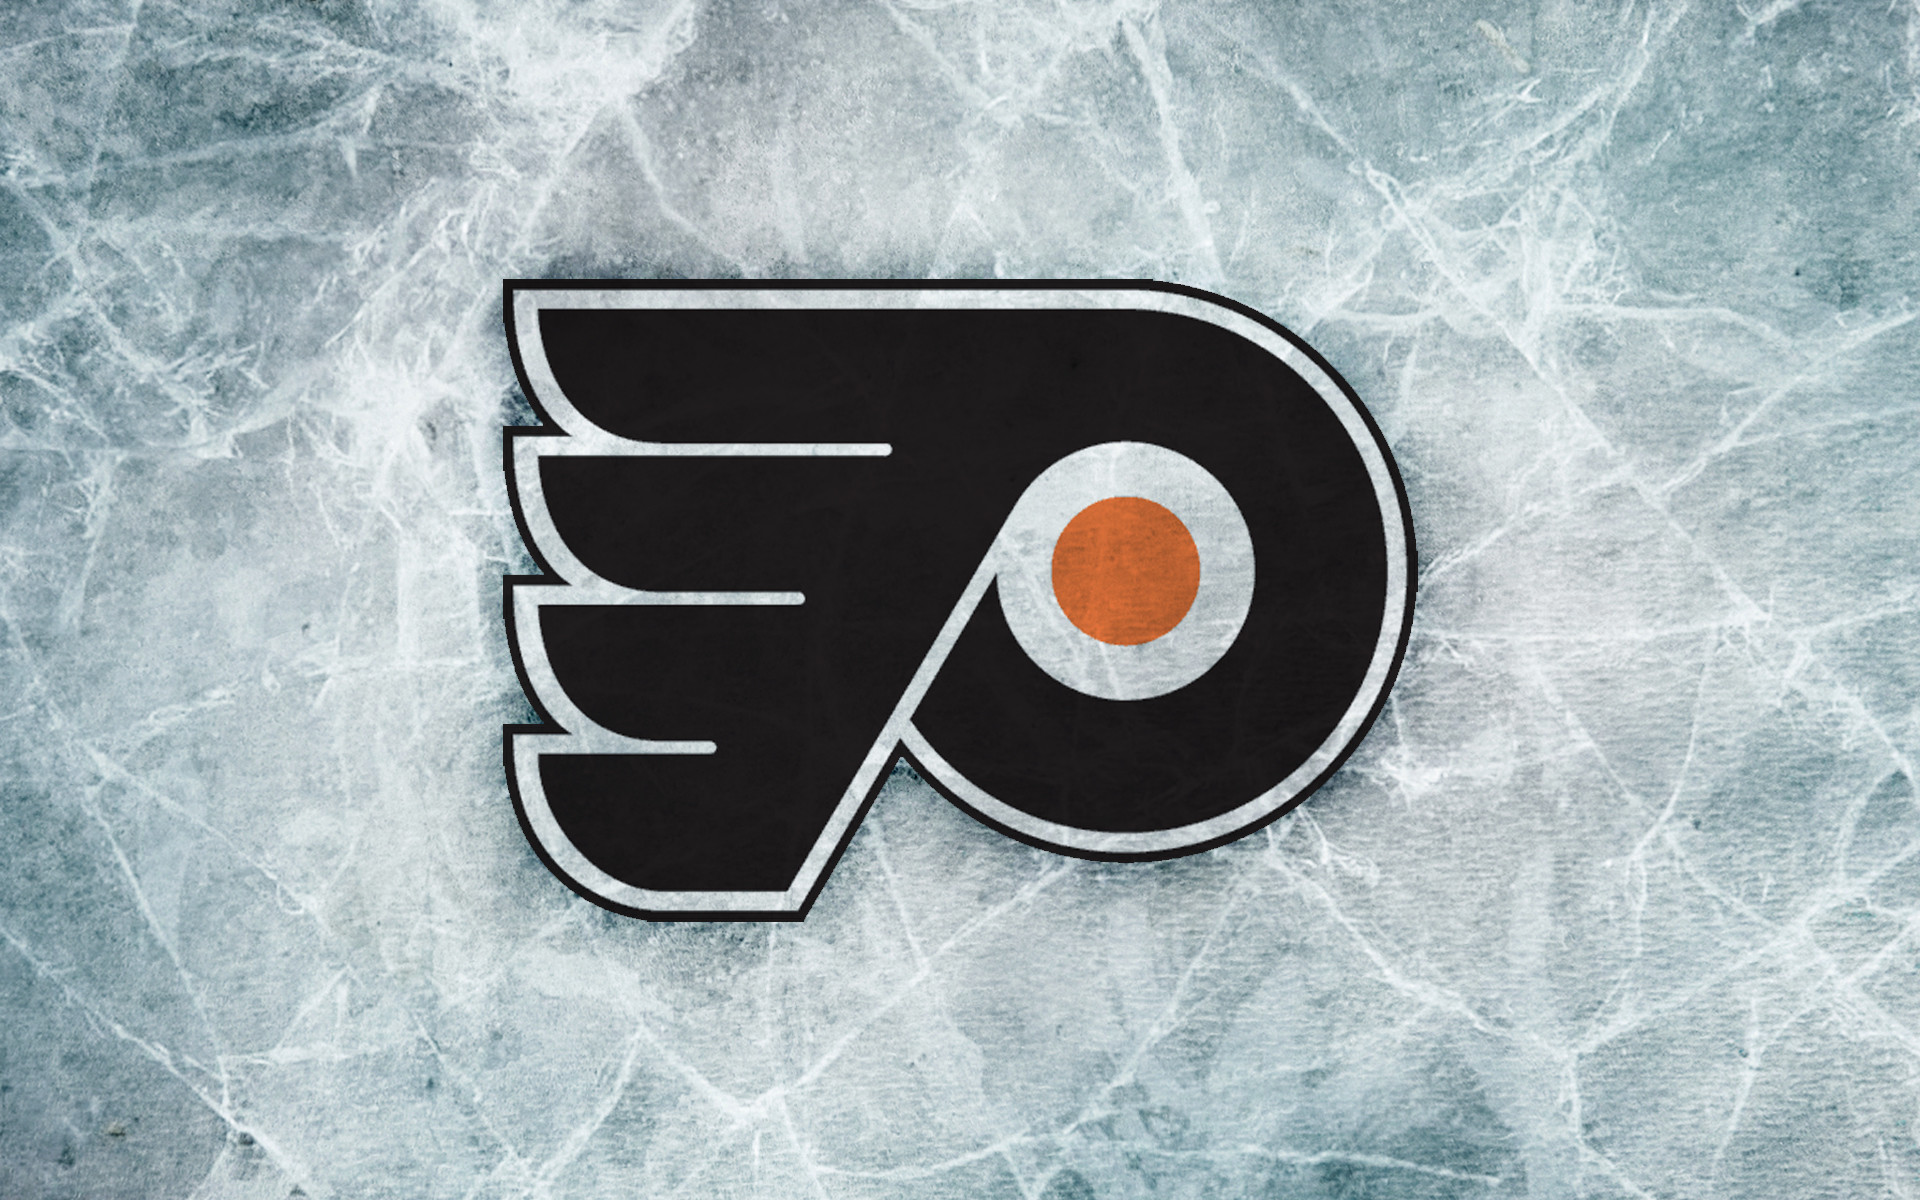 AAA MID-ATLANTIC AND PHILADELPHIA FLYERS TO HOST POP-UP POND HOCKEY EVENT AT